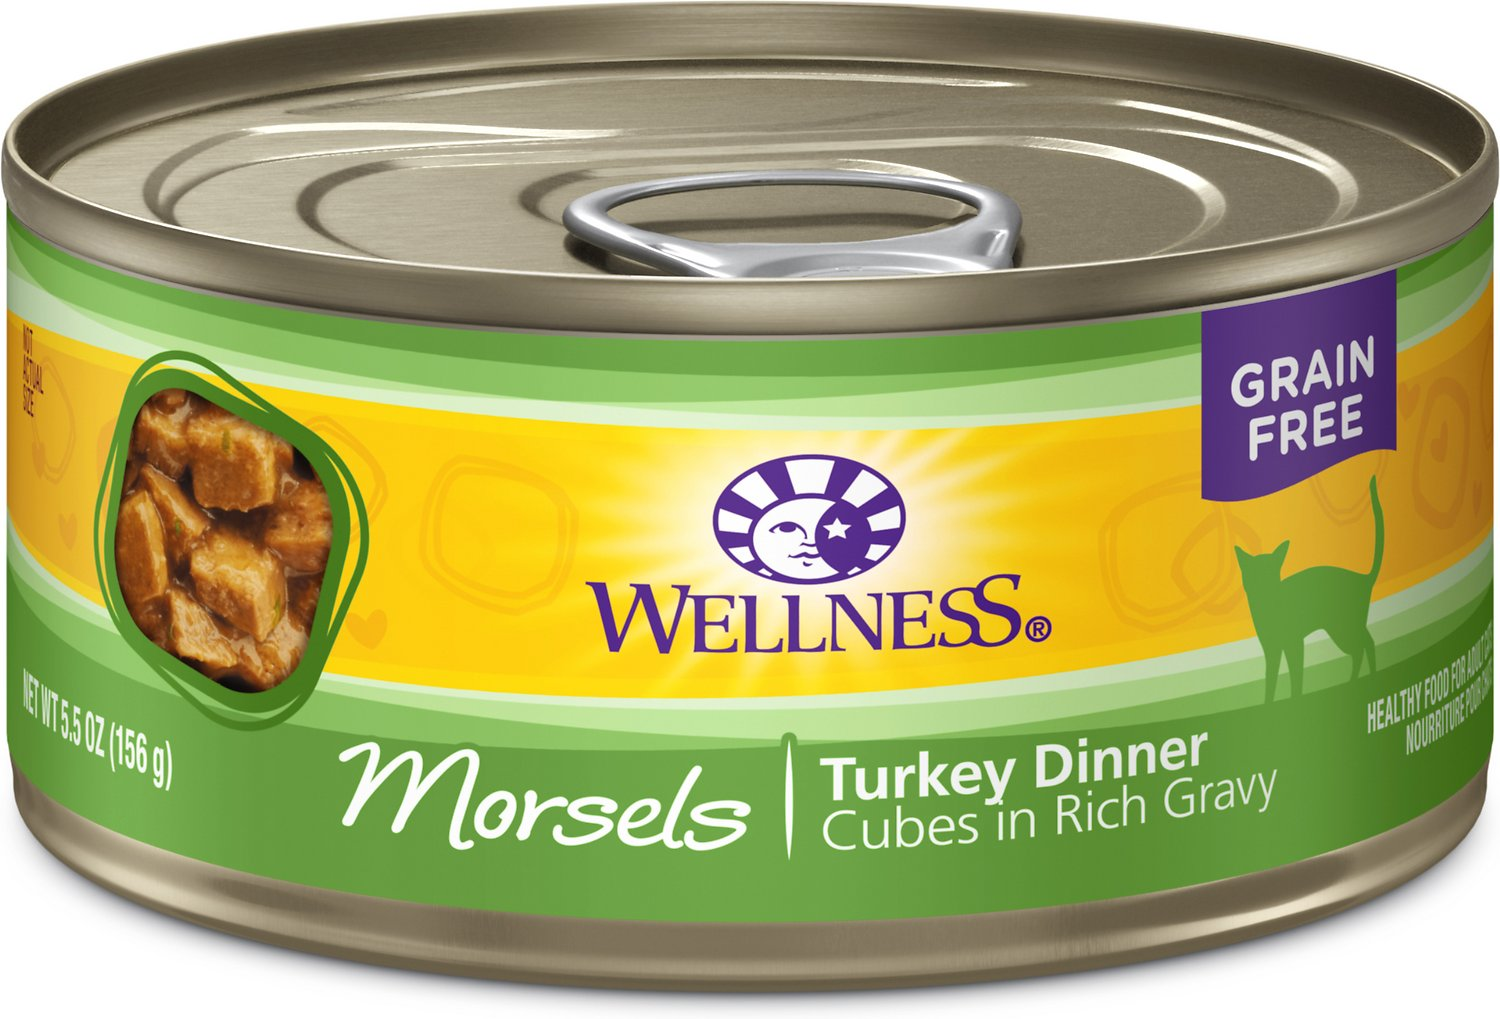 Wellness Morsels Turkey Dinner Cubes in Rich Gravy Grain-Free Canned Cat Food, 5.5-oz